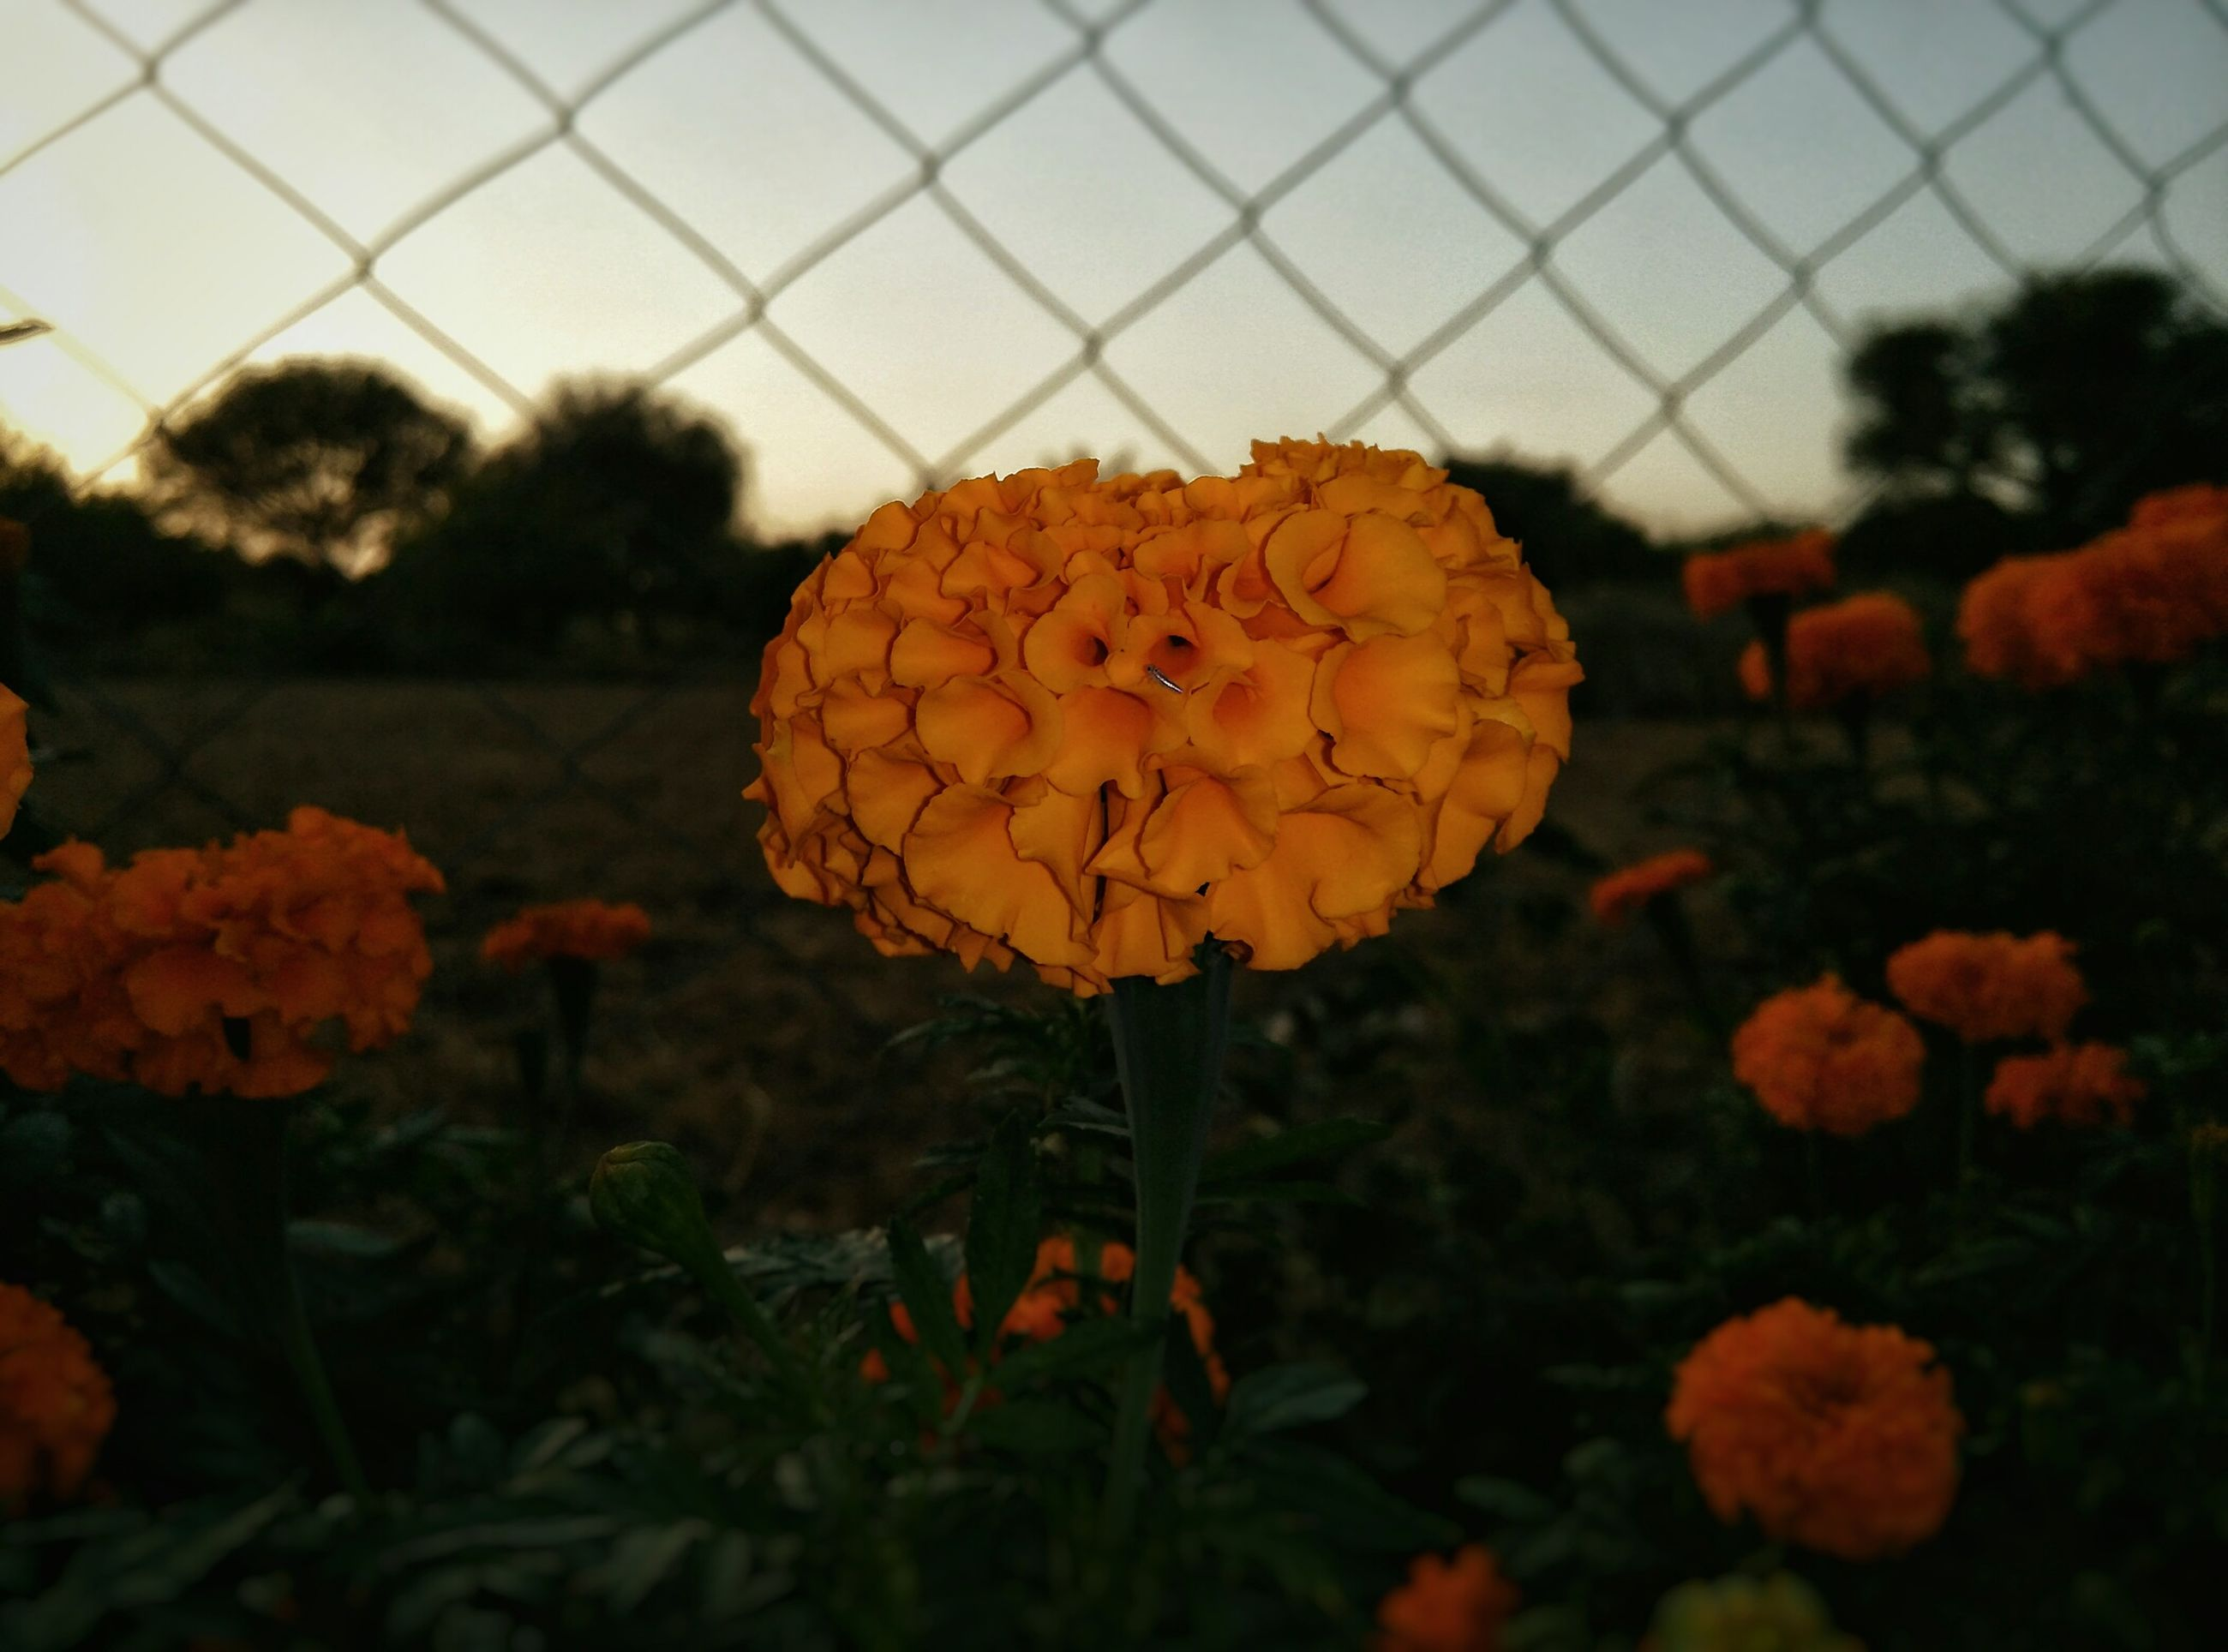 orange color, growth, fragility, flower, focus on foreground, beauty in nature, plant, nature, close-up, field, freshness, leaf, sunset, petal, season, red, fence, autumn, flower head, blooming